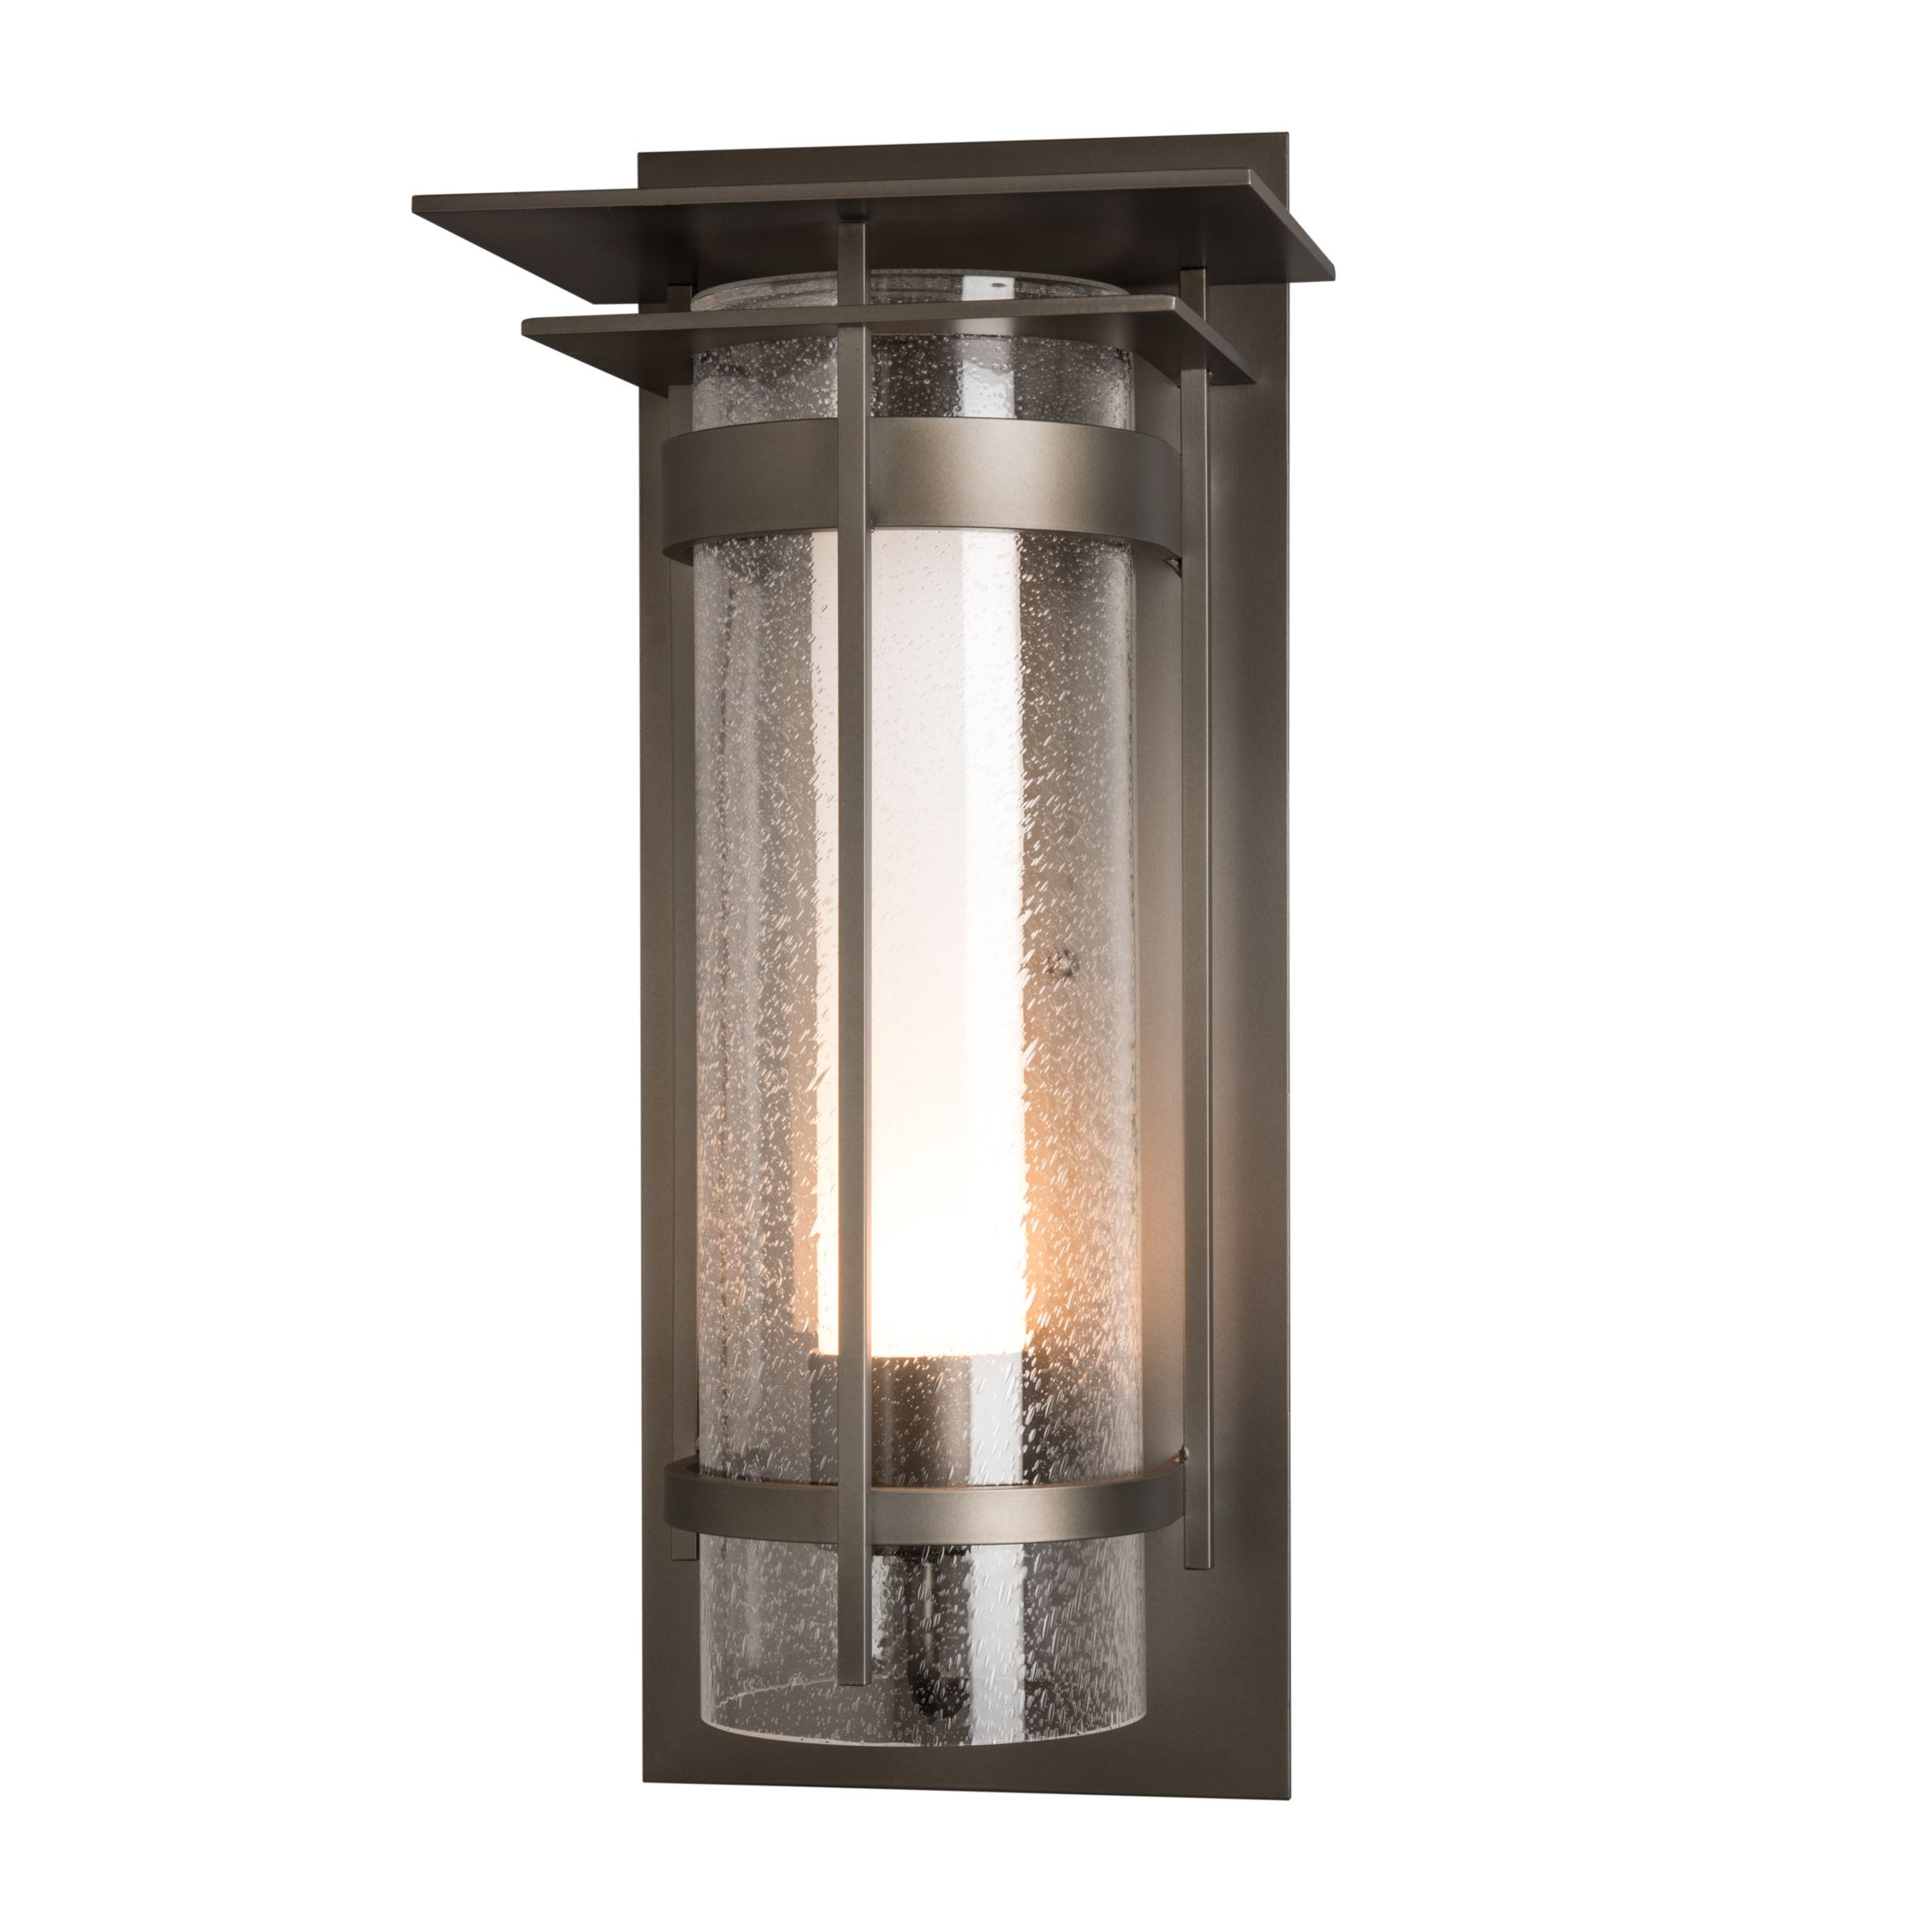 Thumbnail for Banded Seeded Glass with Top Plate Large Outdoor Sconce